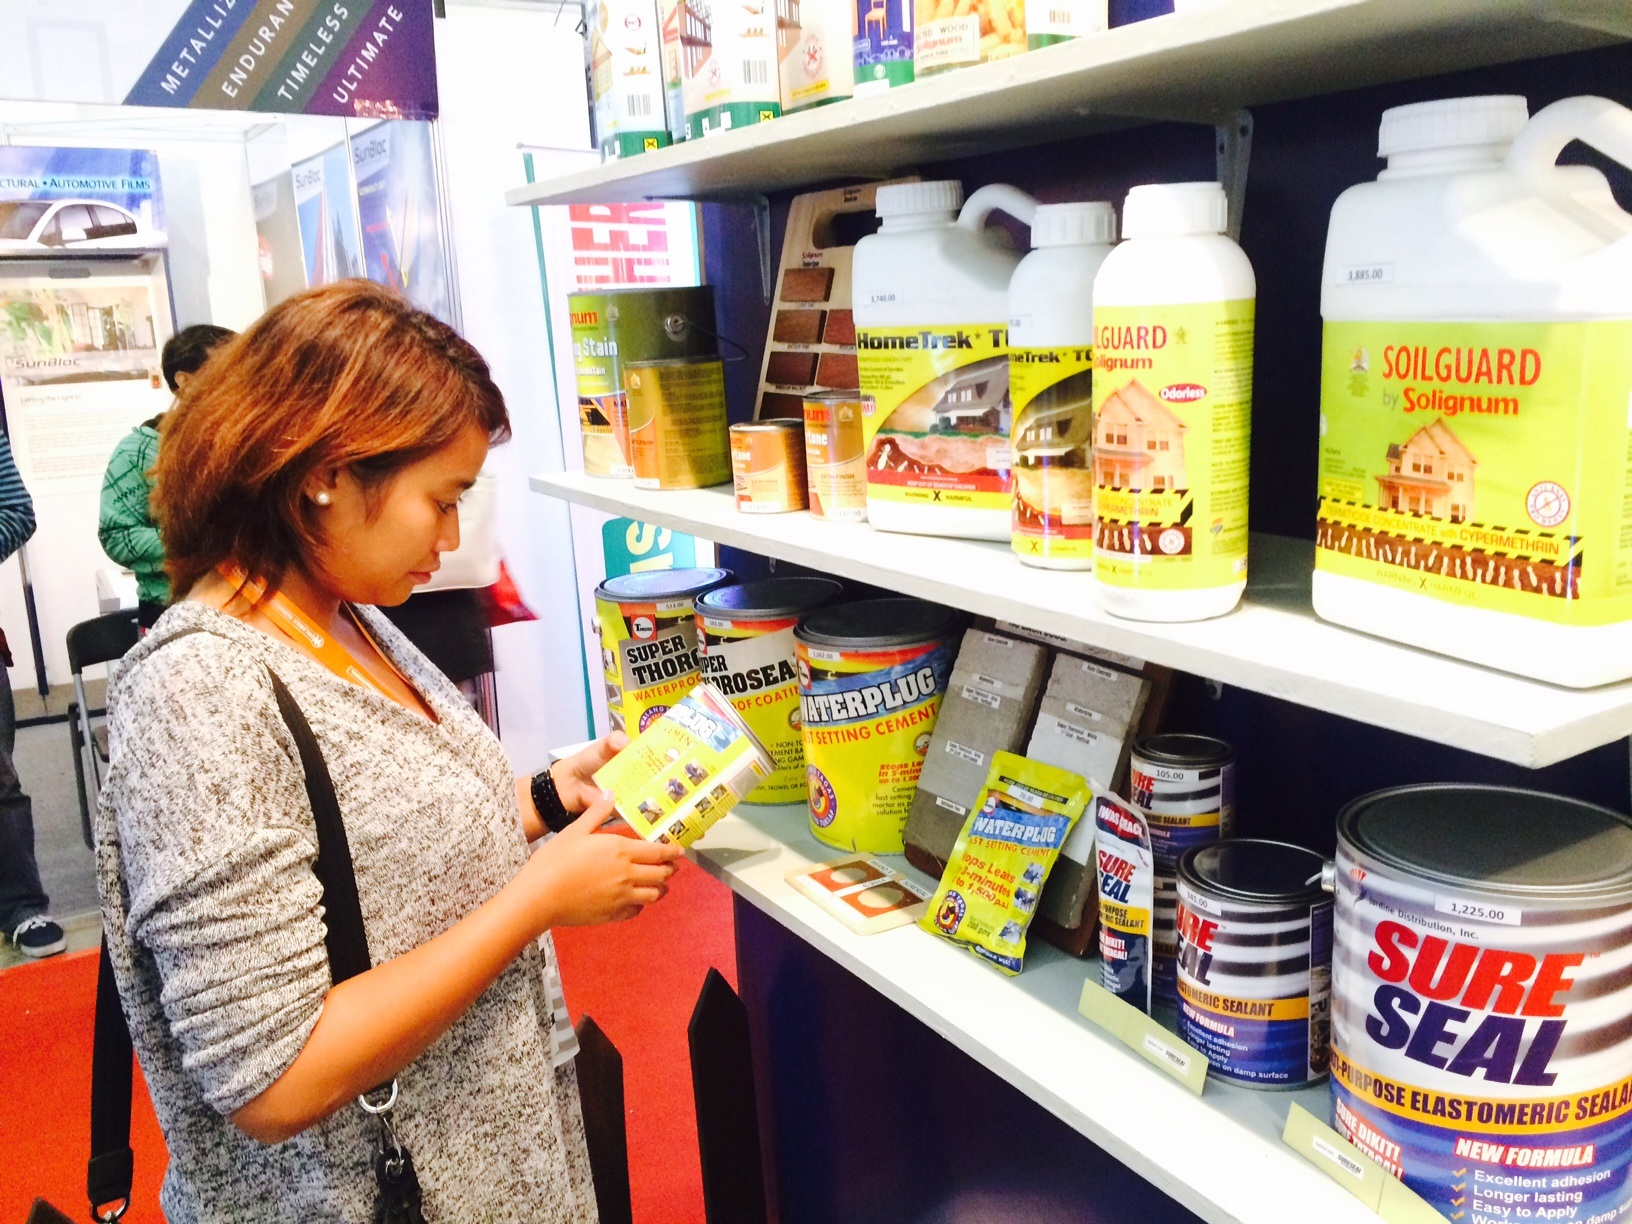 An interested buyer checks out different waterproofing and wood preservation products of Jardine that are on sale during the expo